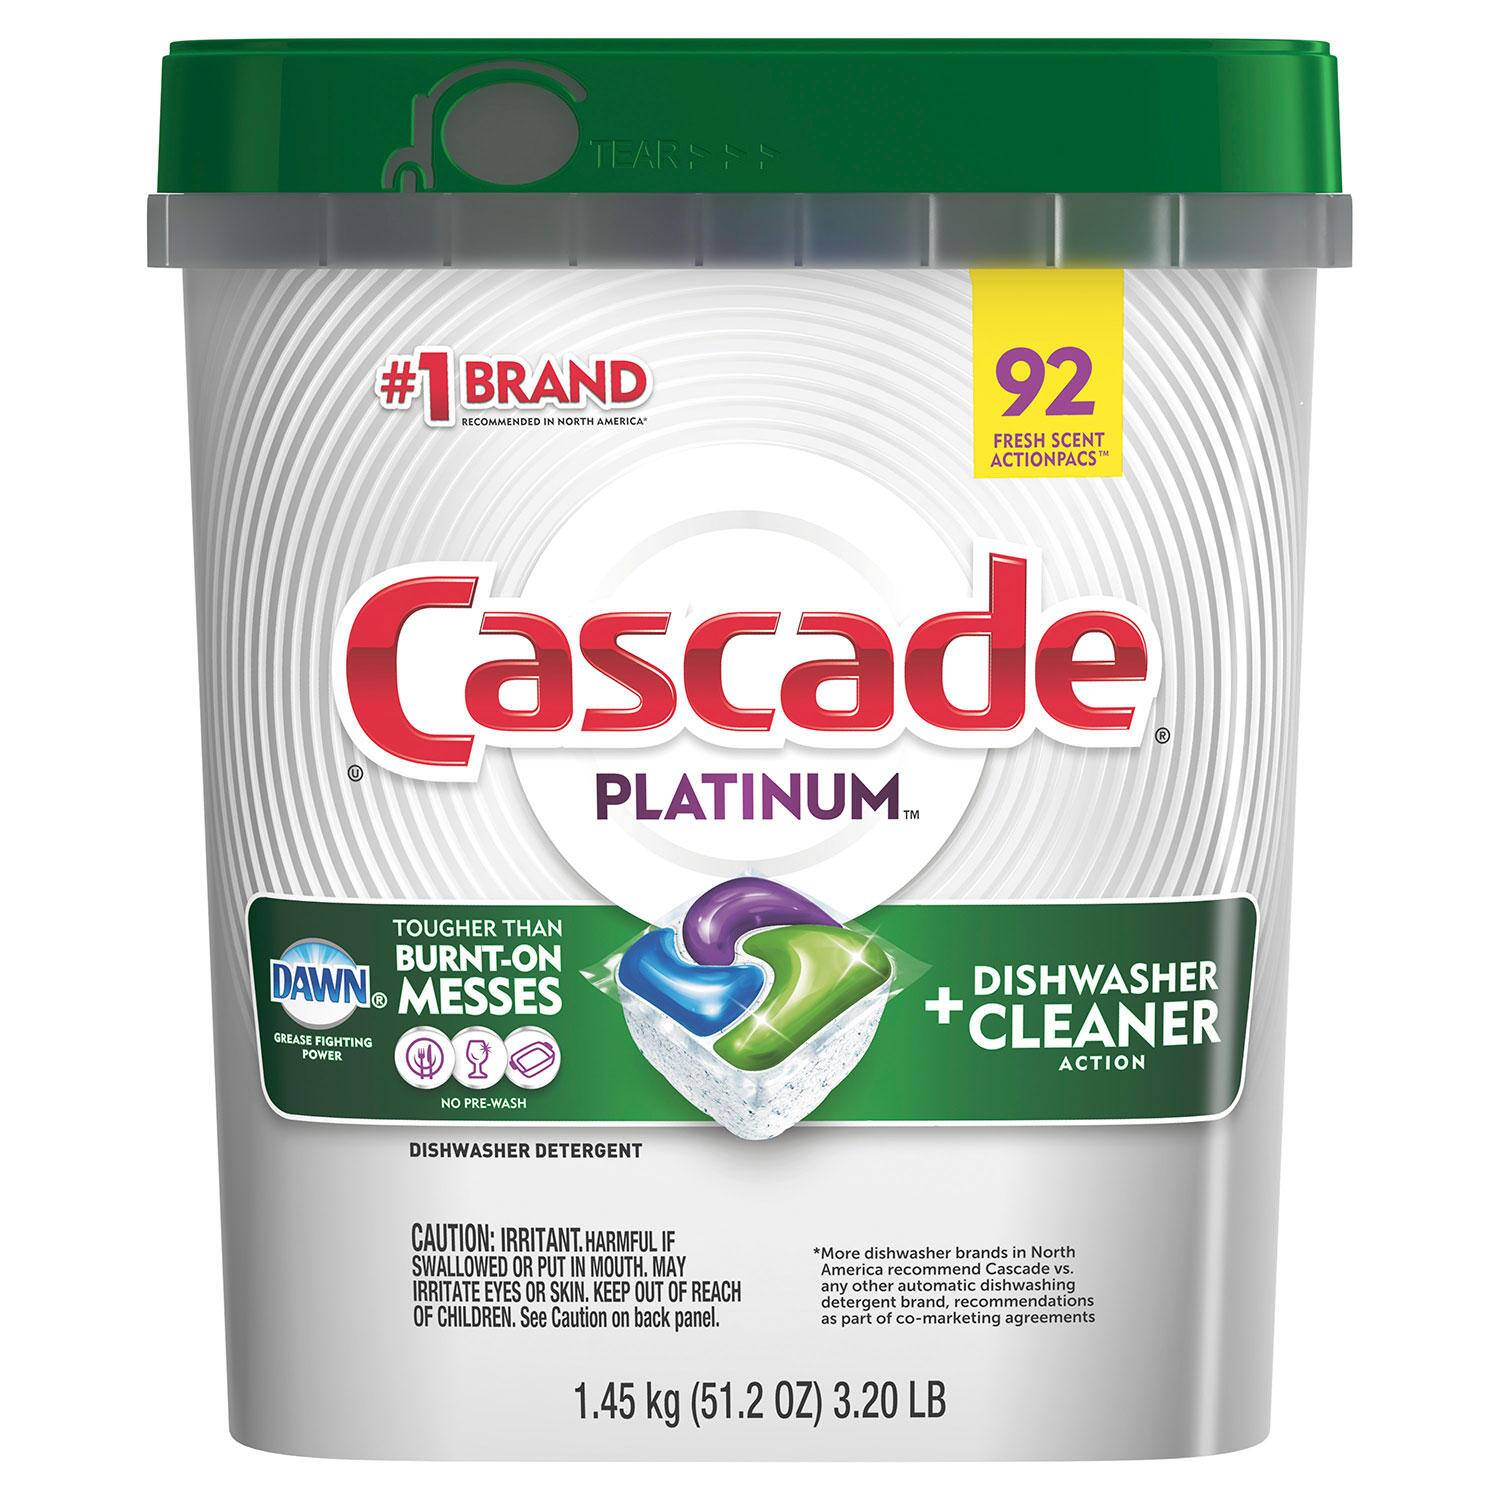 Sam's Club Members: 92-Ct Cascade Platinum ActionPacs Dishwasher Detergent